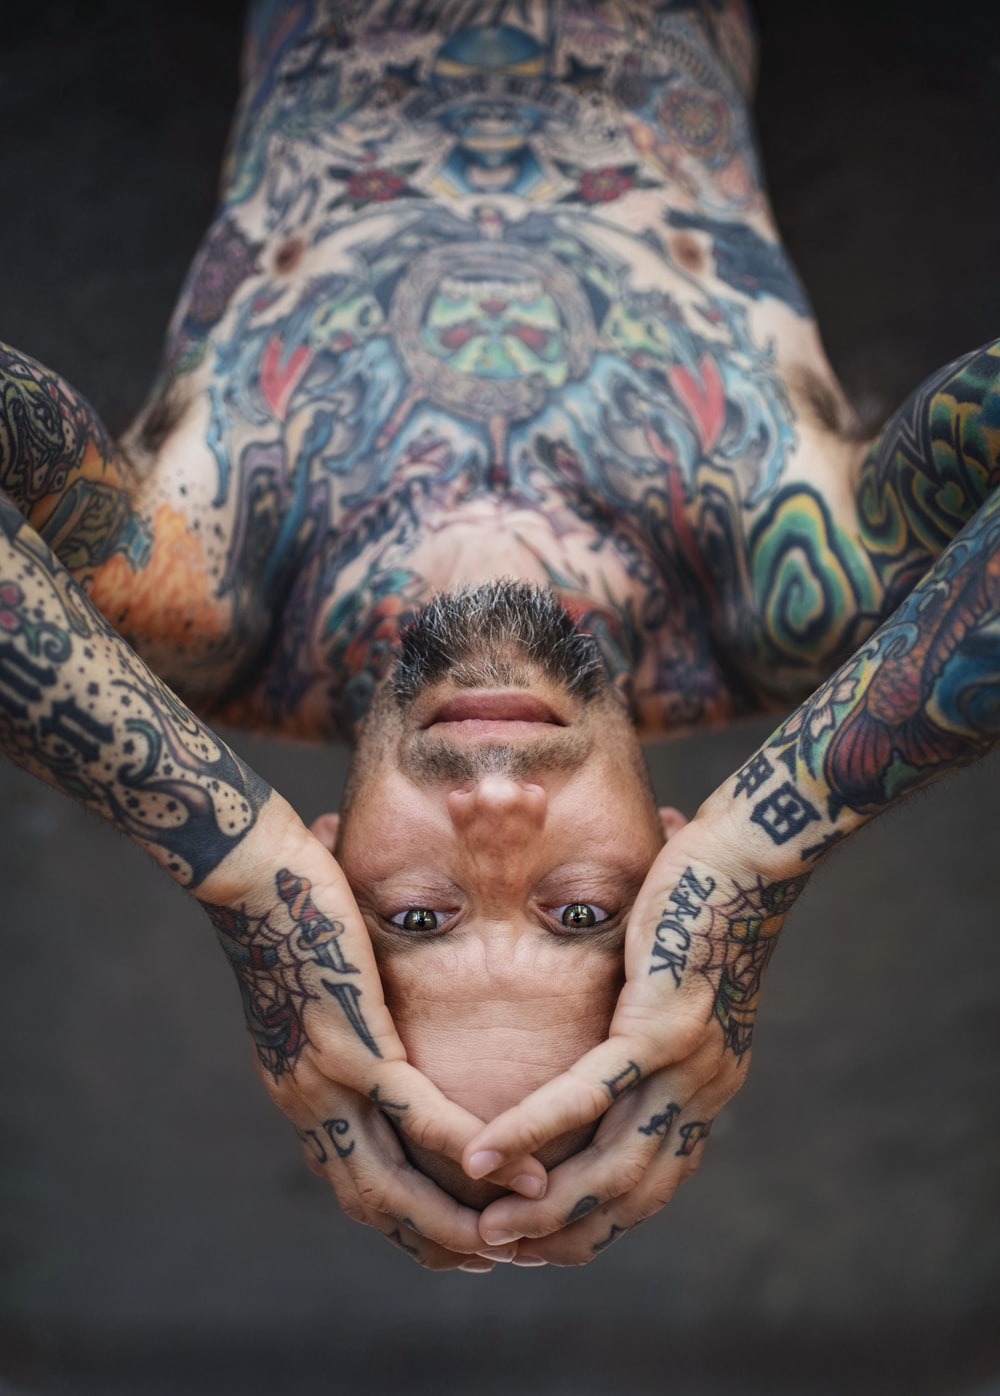 Tattoo Images Hq Download Free Images On Unsplash